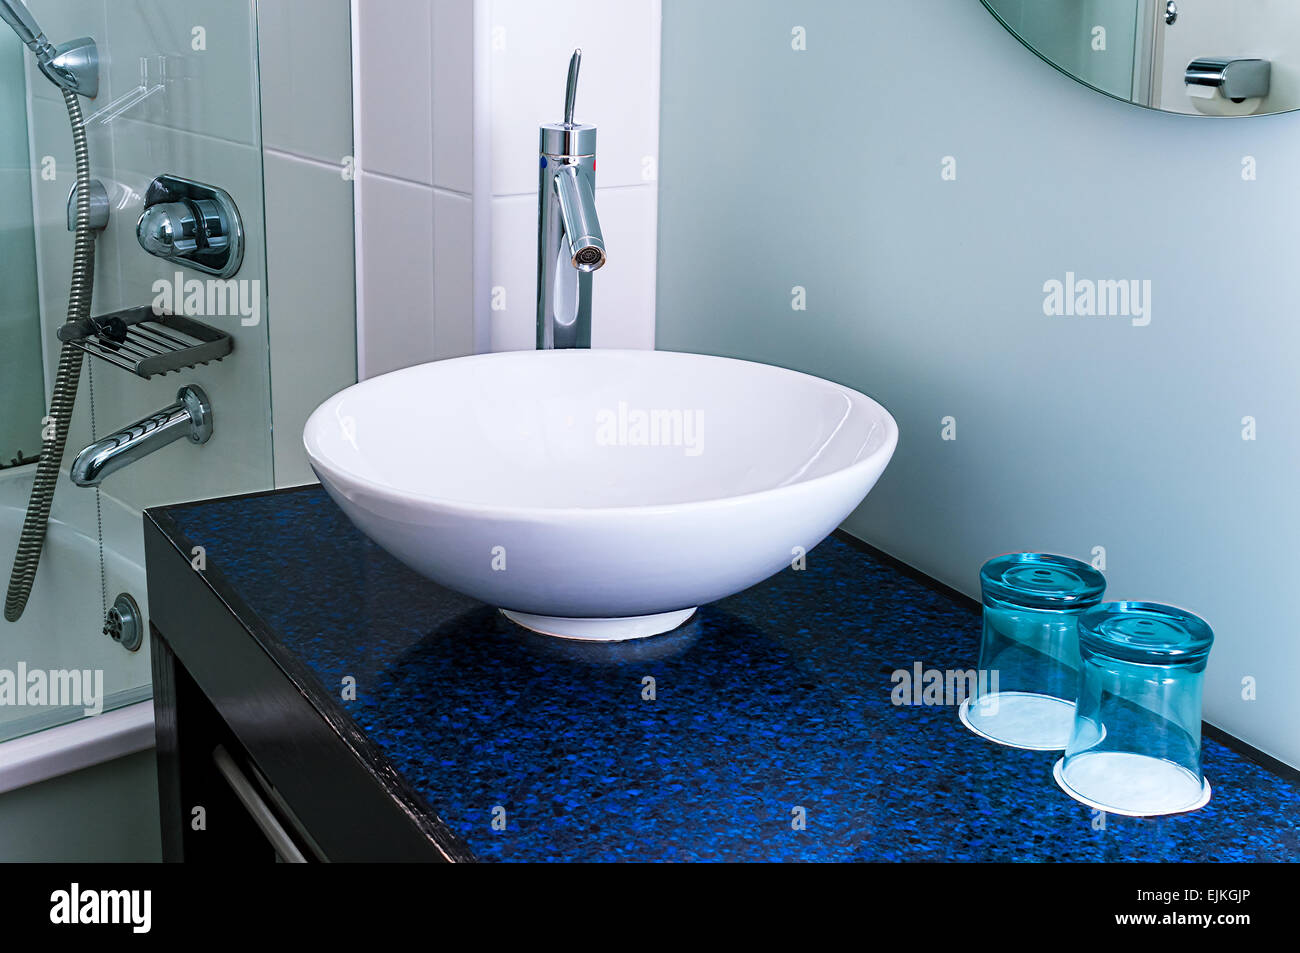 Sink Mixer Stock Photos & Sink Mixer Stock Images - Alamy